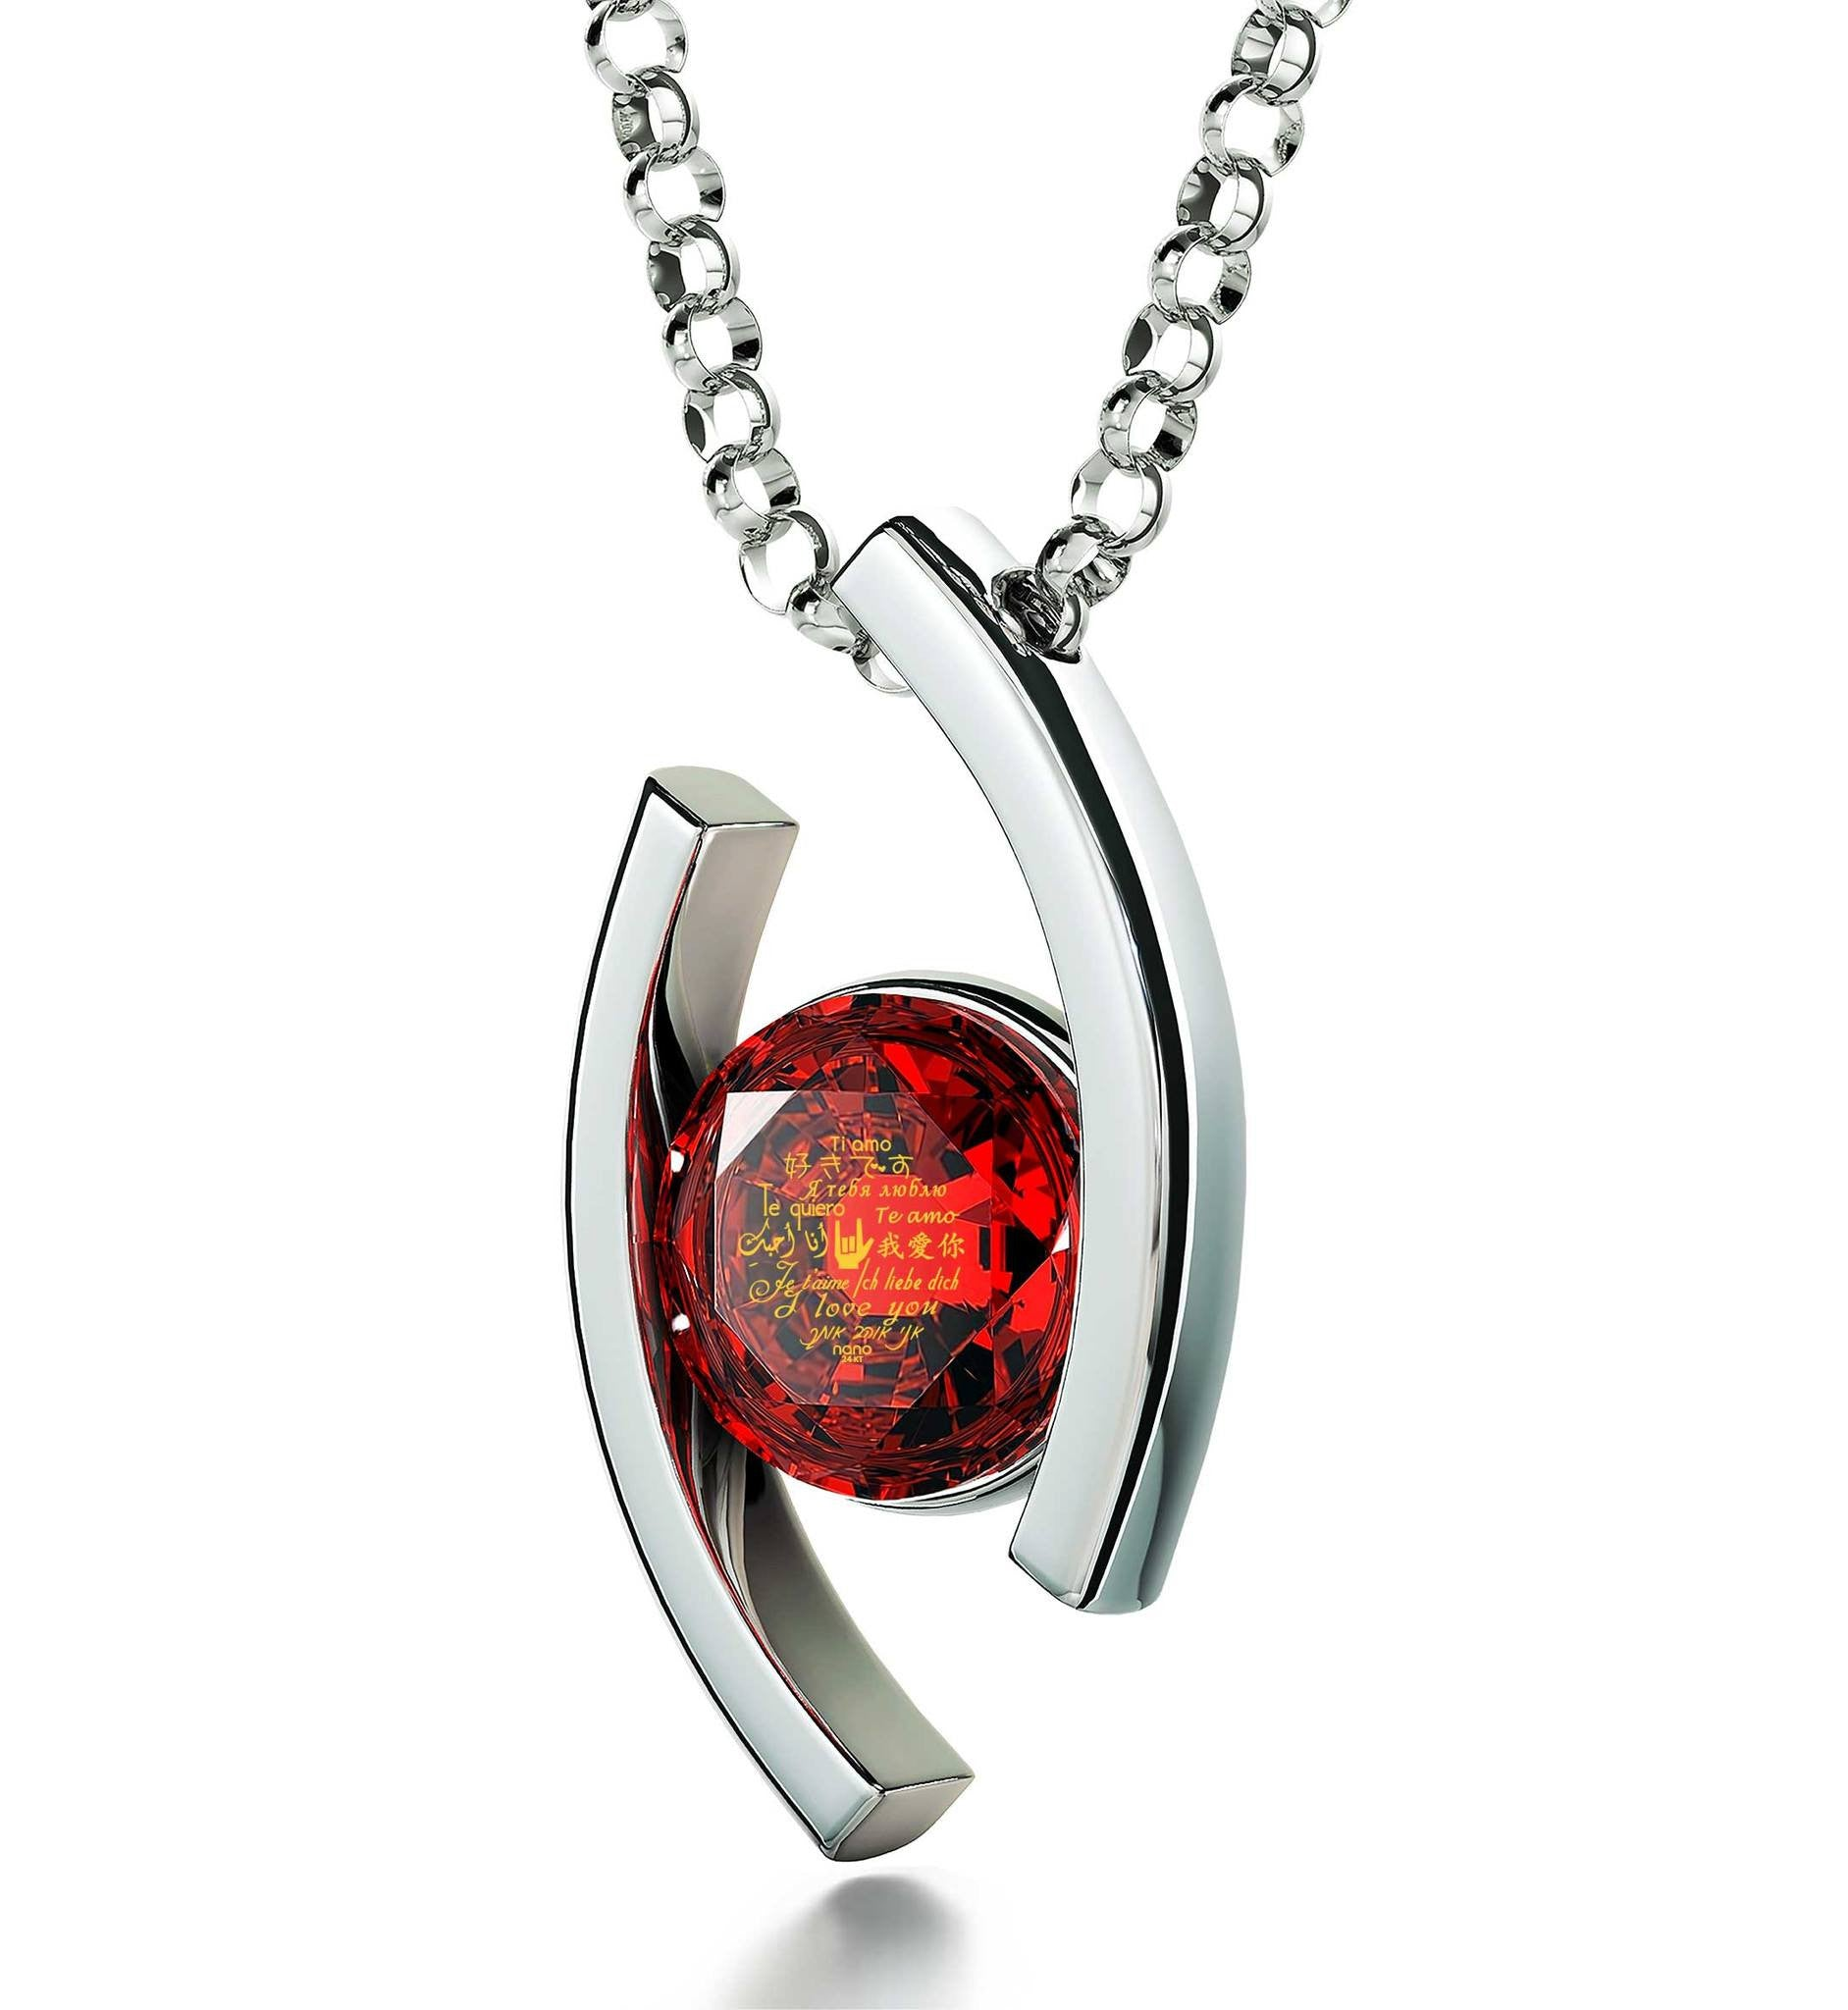 Best Christmas Present For GirlfriendTiAmo Red Stone Jewelry Awesome